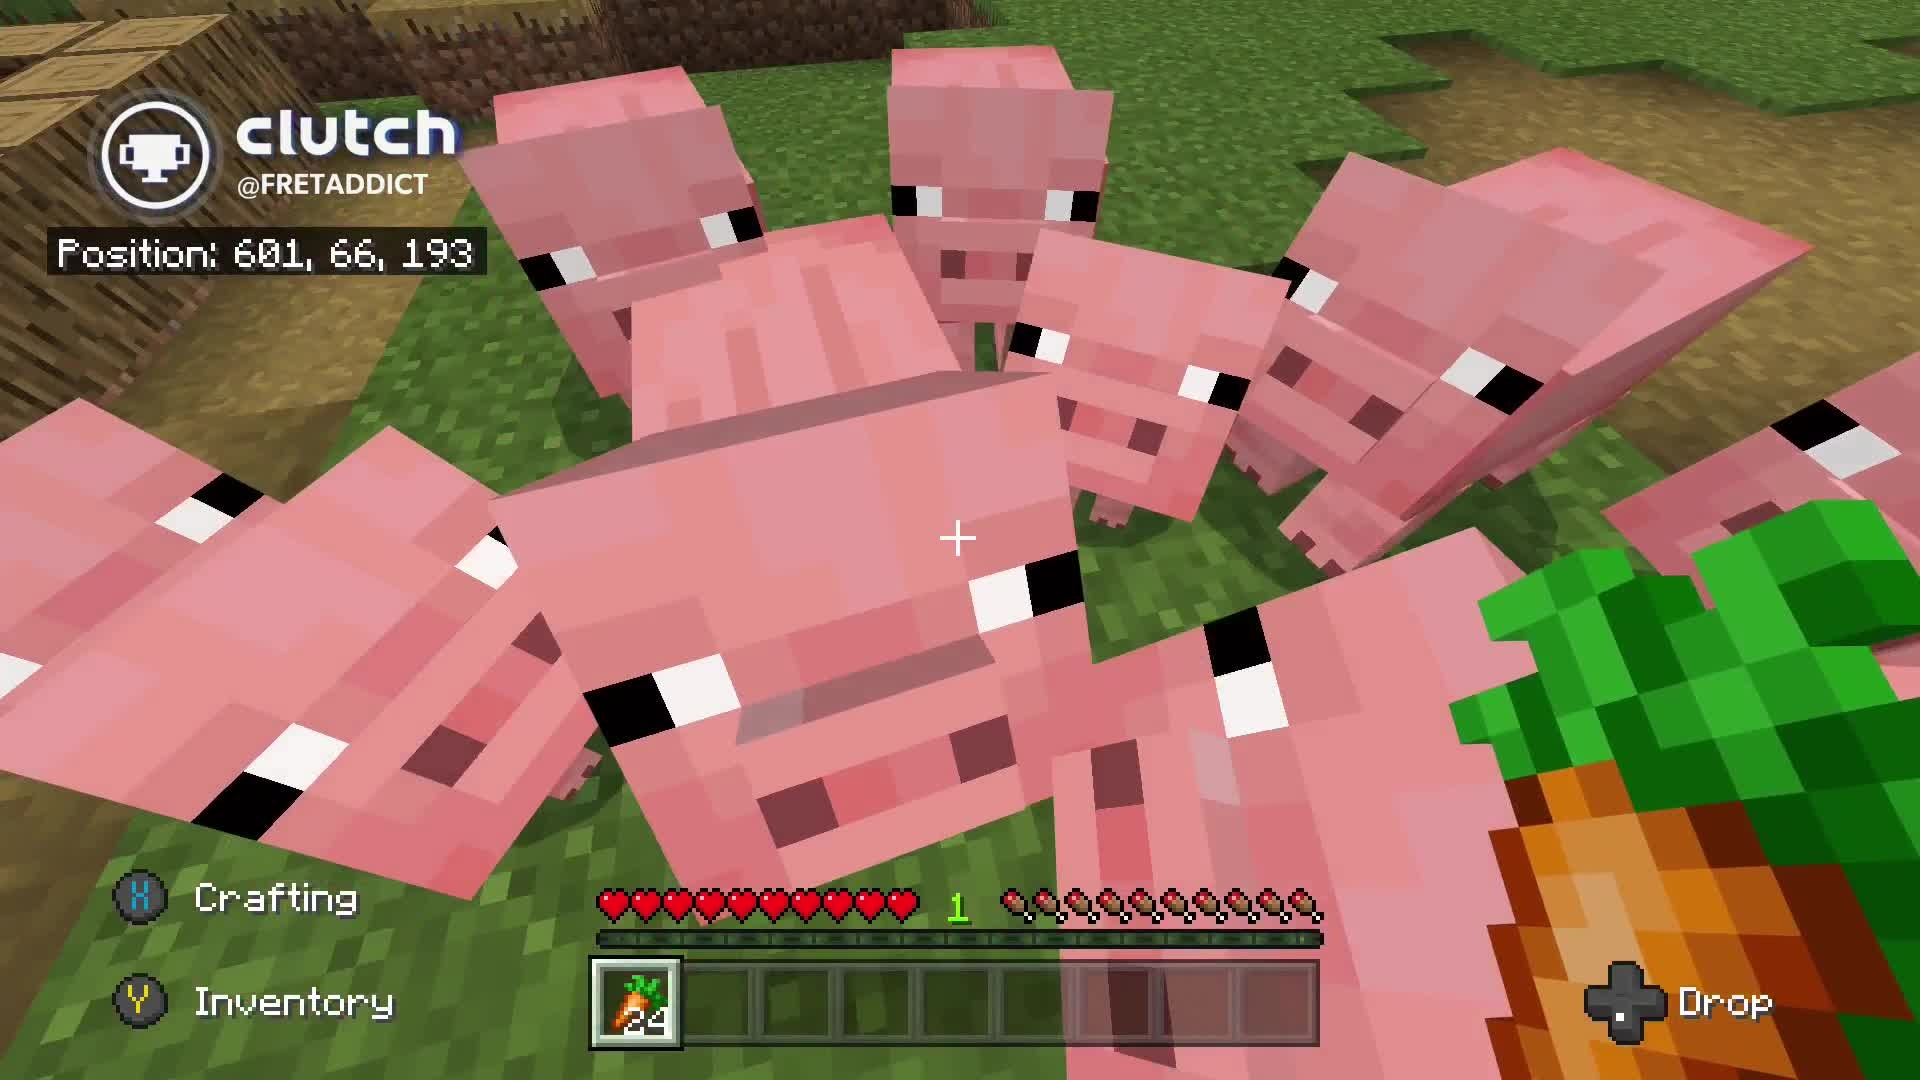 Minecraft: General - They only want me for my carrots  video cover image 0